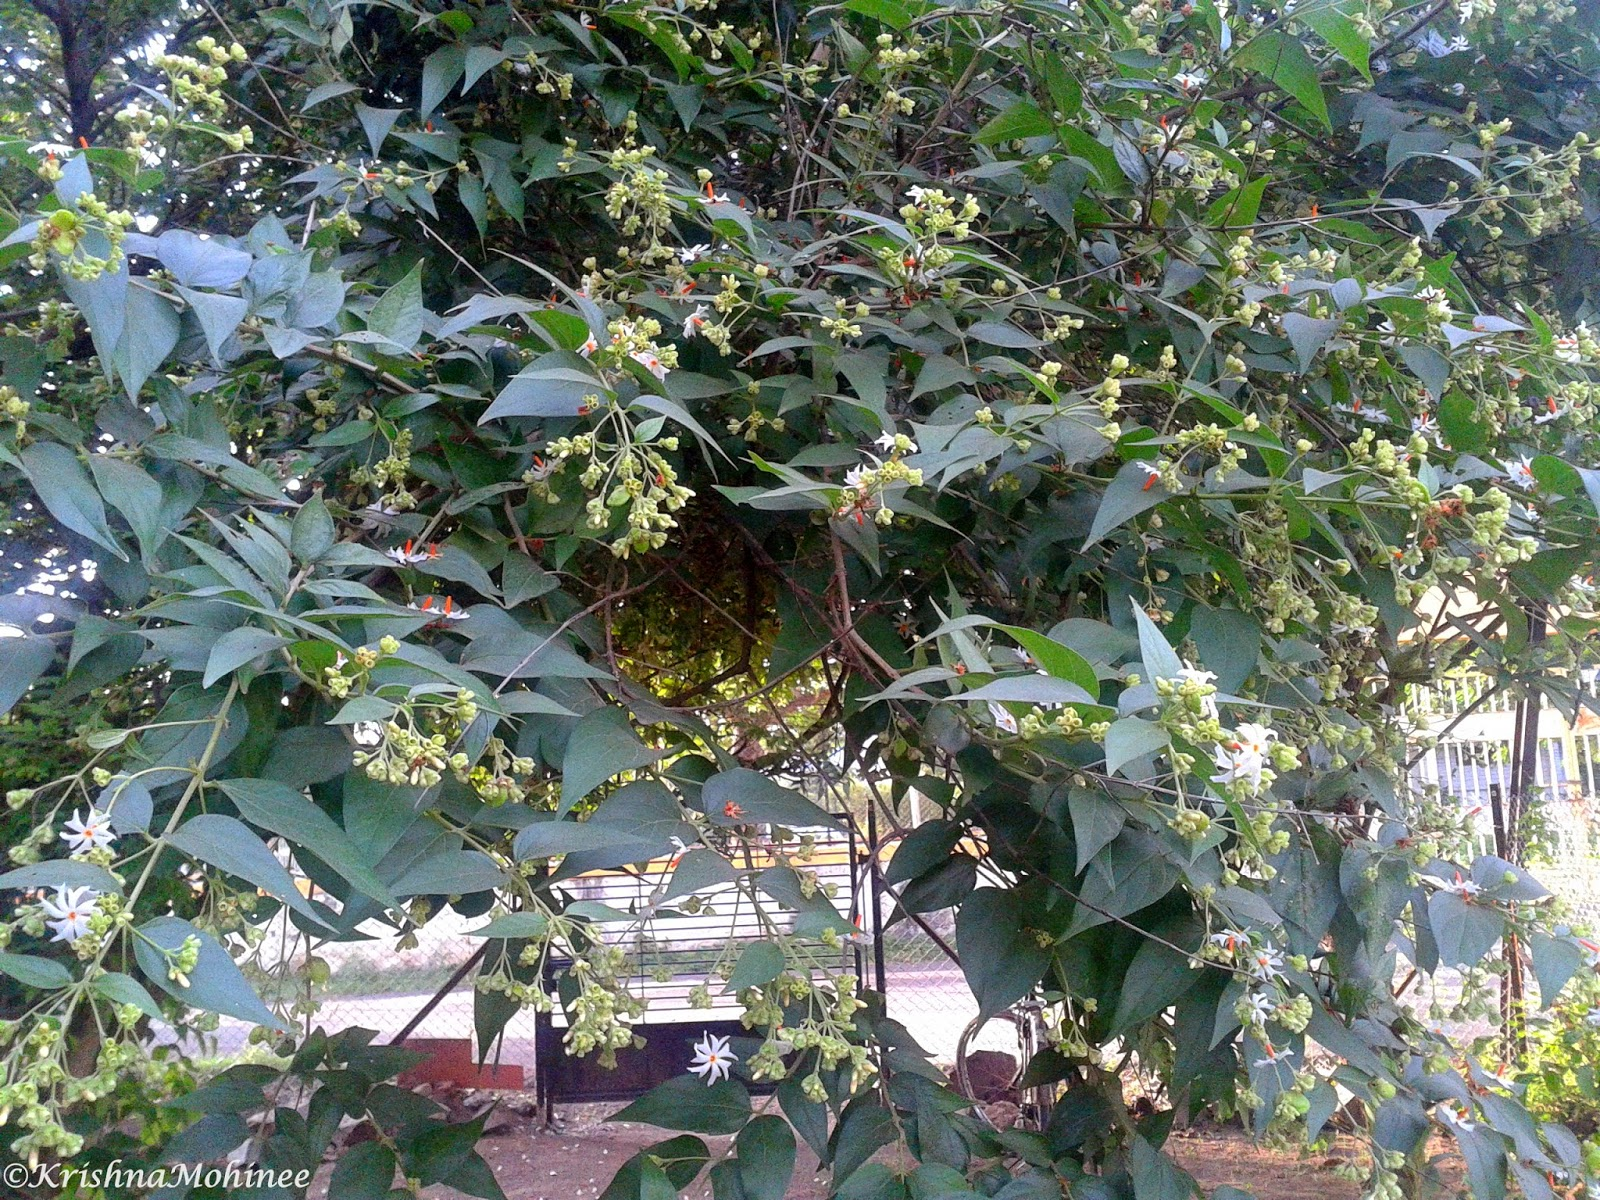 Image: Parijat tree with buds and flowers